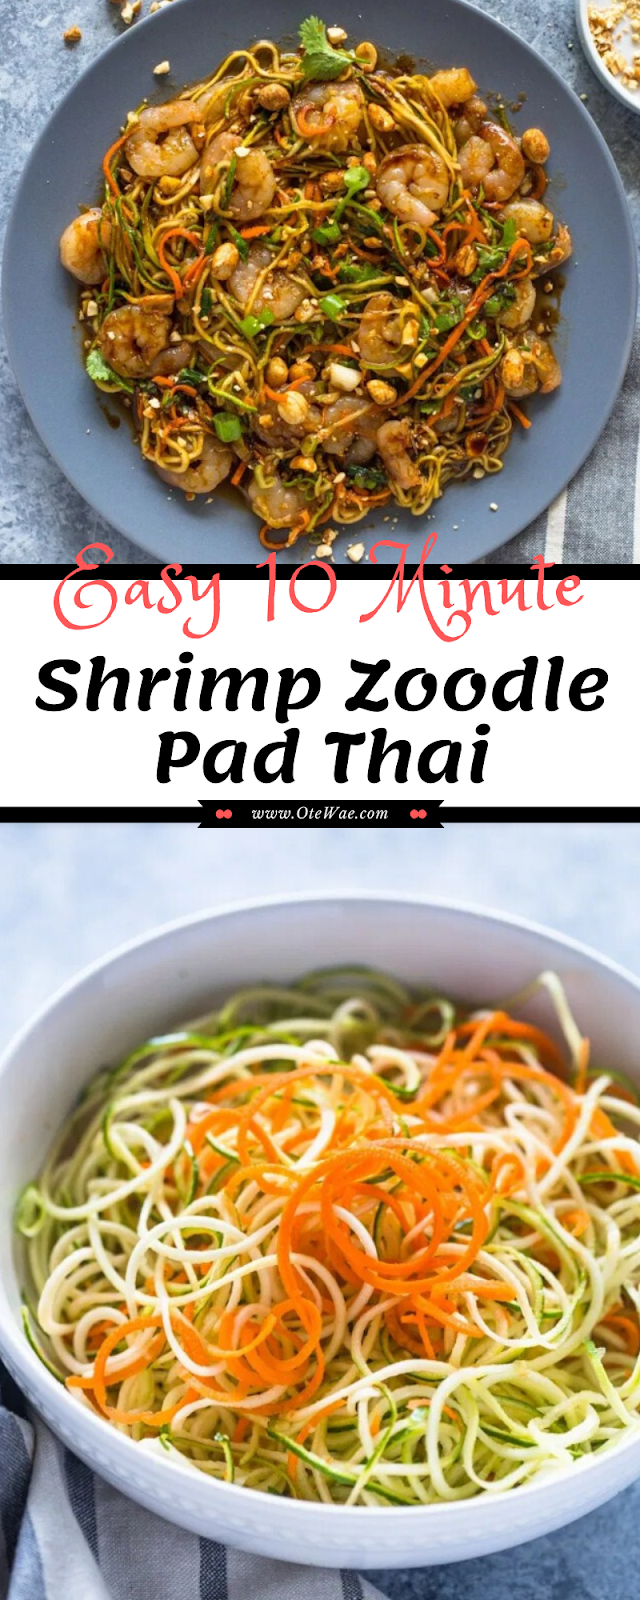 Easy 10 Minute Shrimp Zoodle Pad Thai